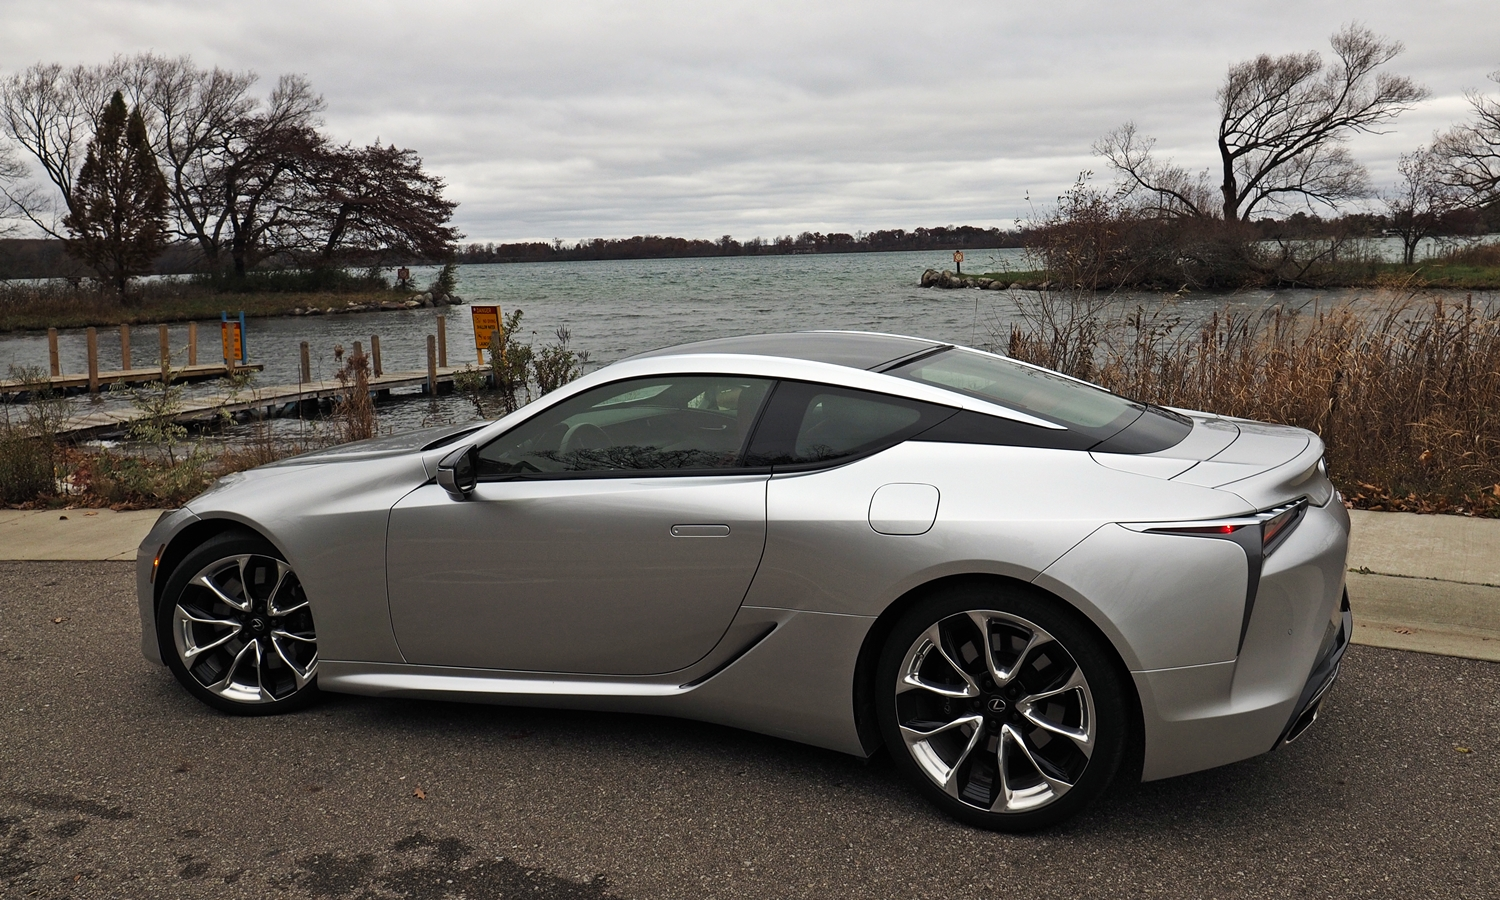 Lexus LC Photos: Lexus LC 500 side view slight rearward angle